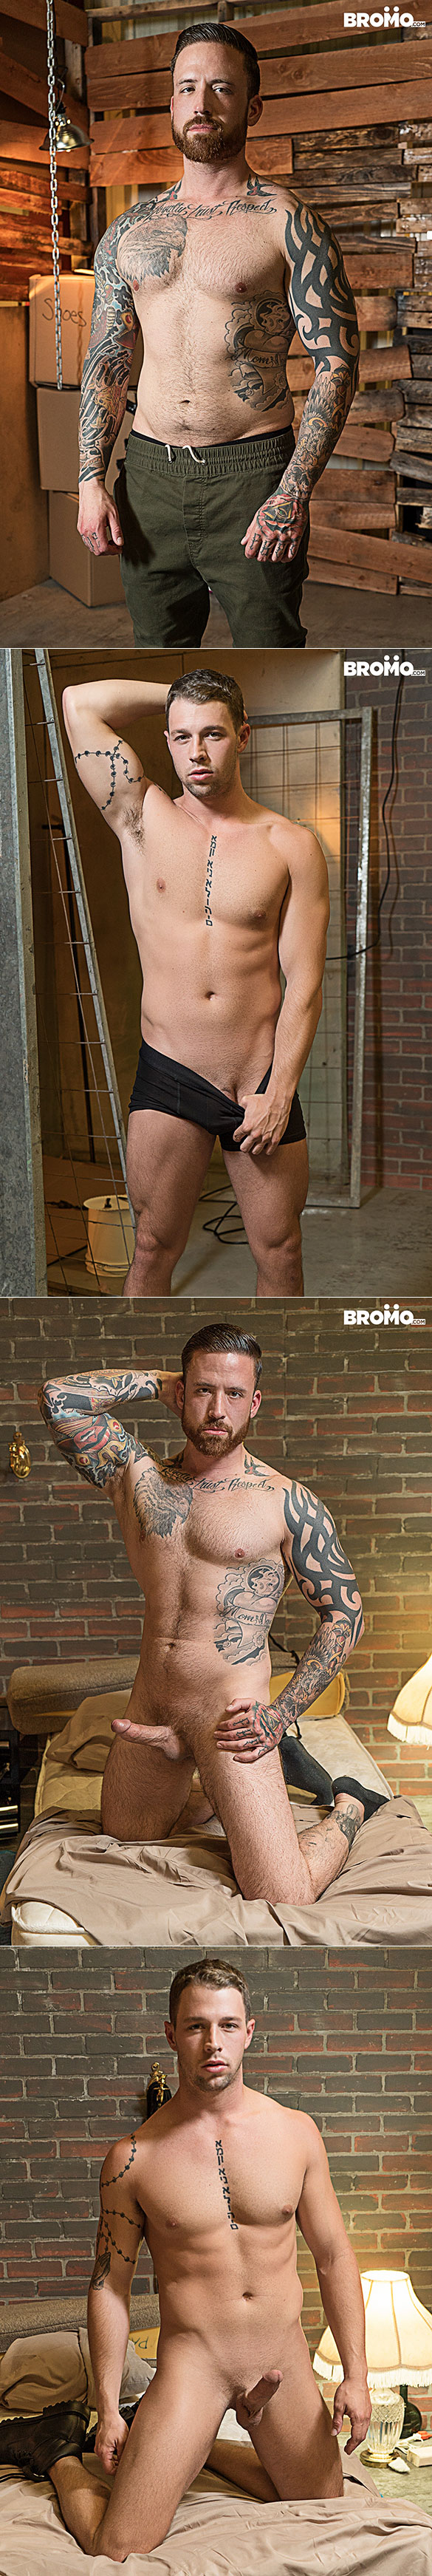 """Bromo: Casey Kole gets pounded raw by Jordan Levine in """"Bareback Inquisition, Part 4"""""""